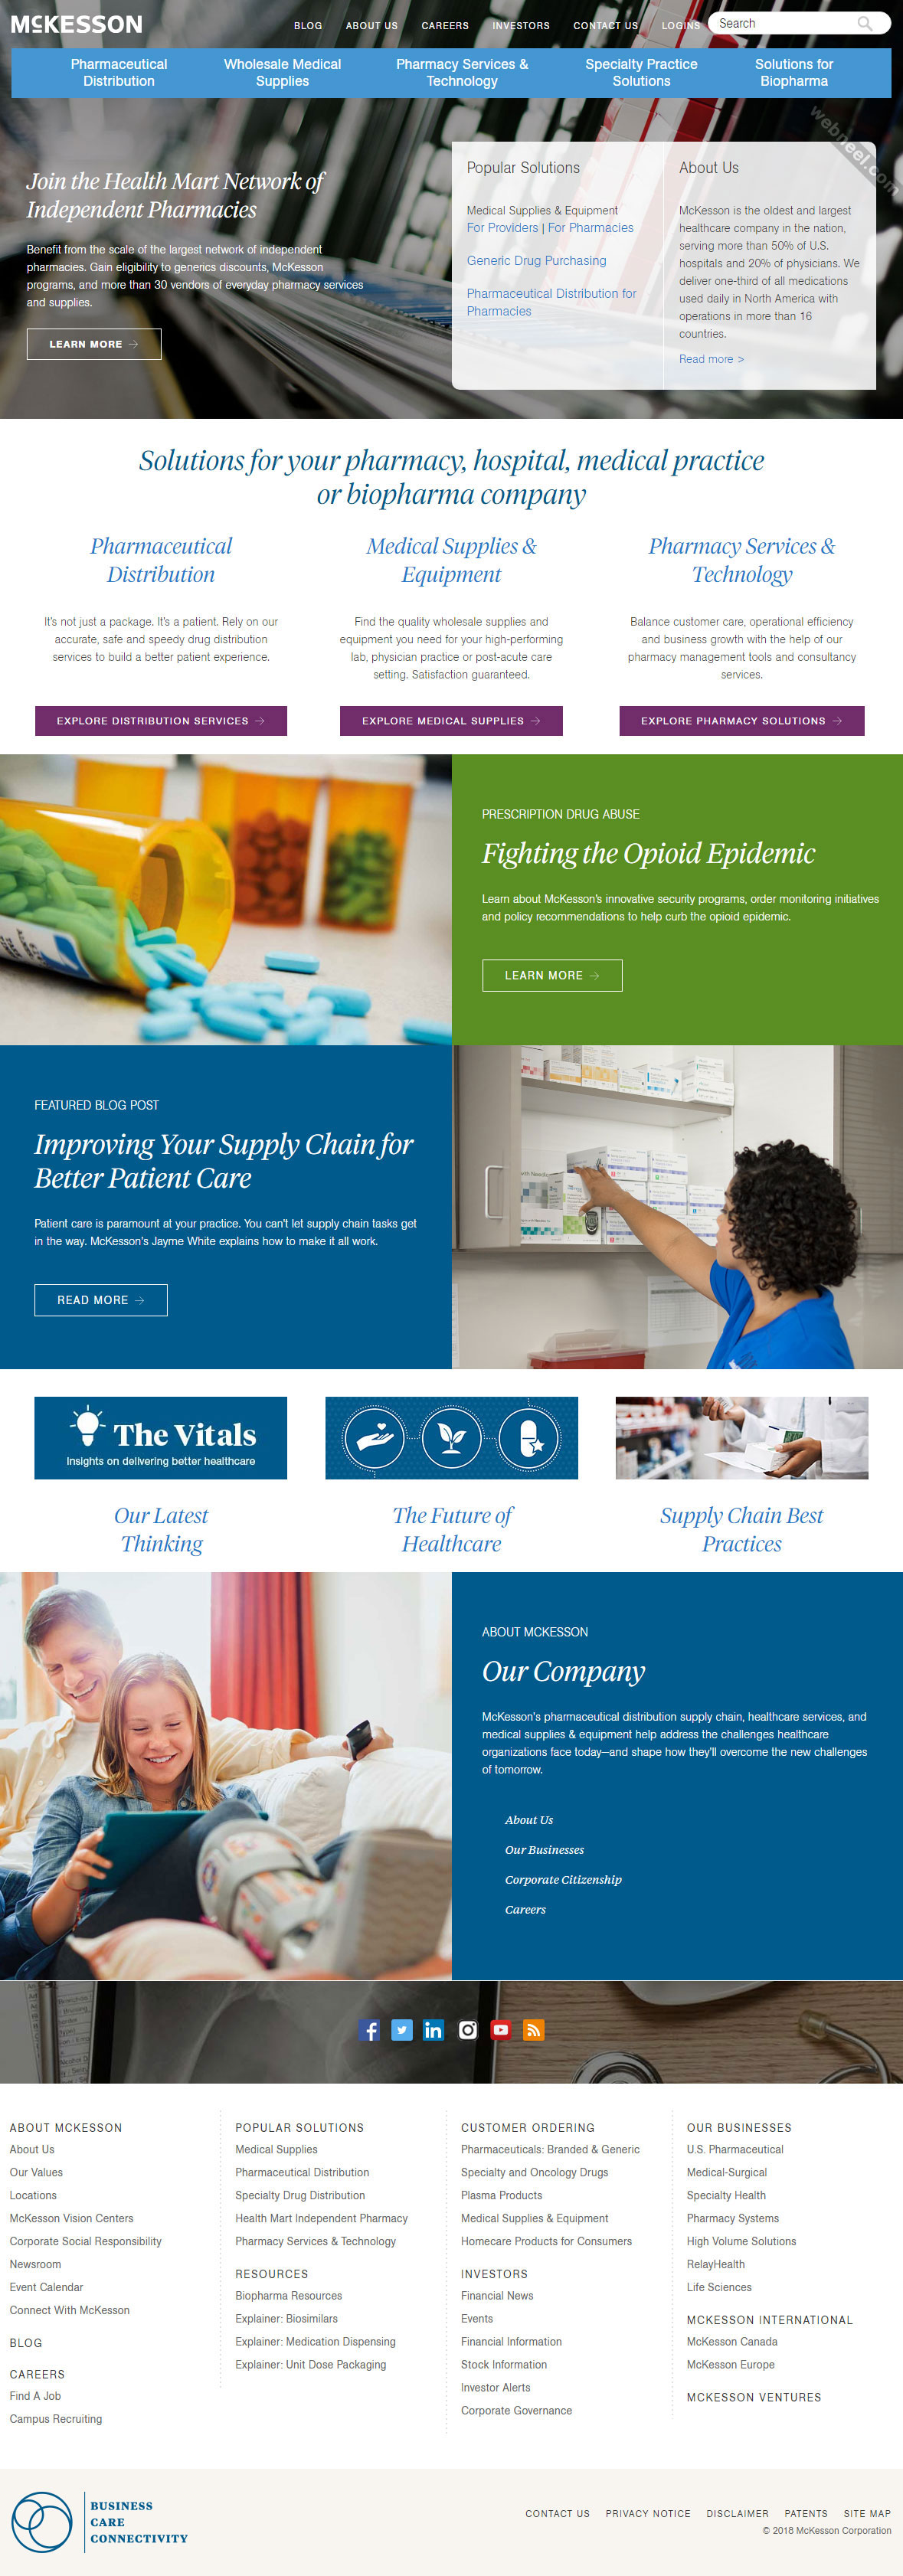 corporate website design mckesson